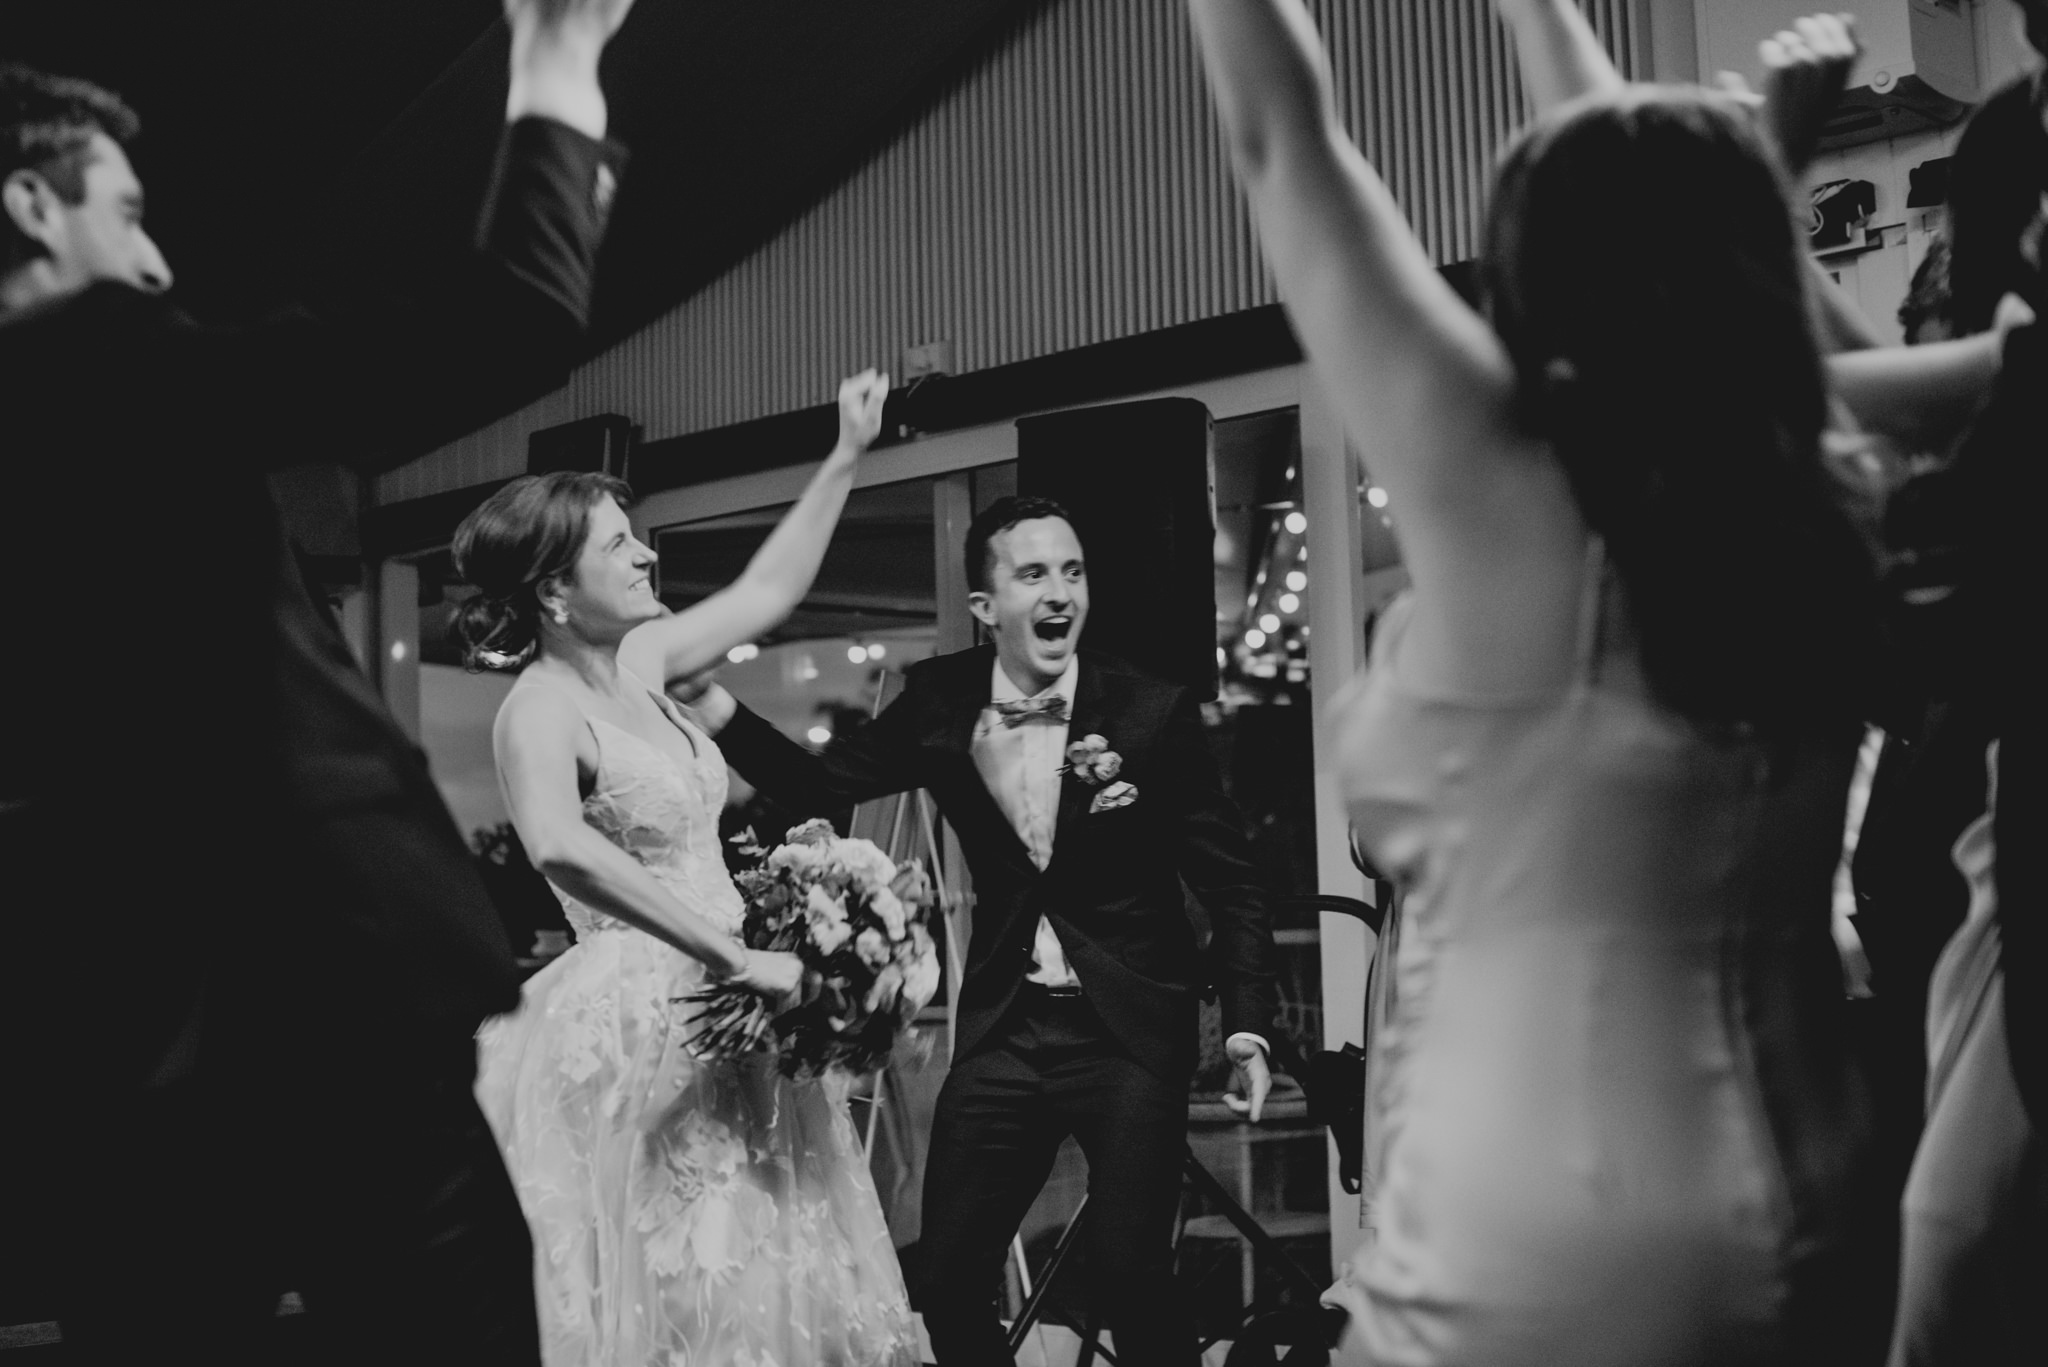 Bride and groom yelling and dancing excitedly